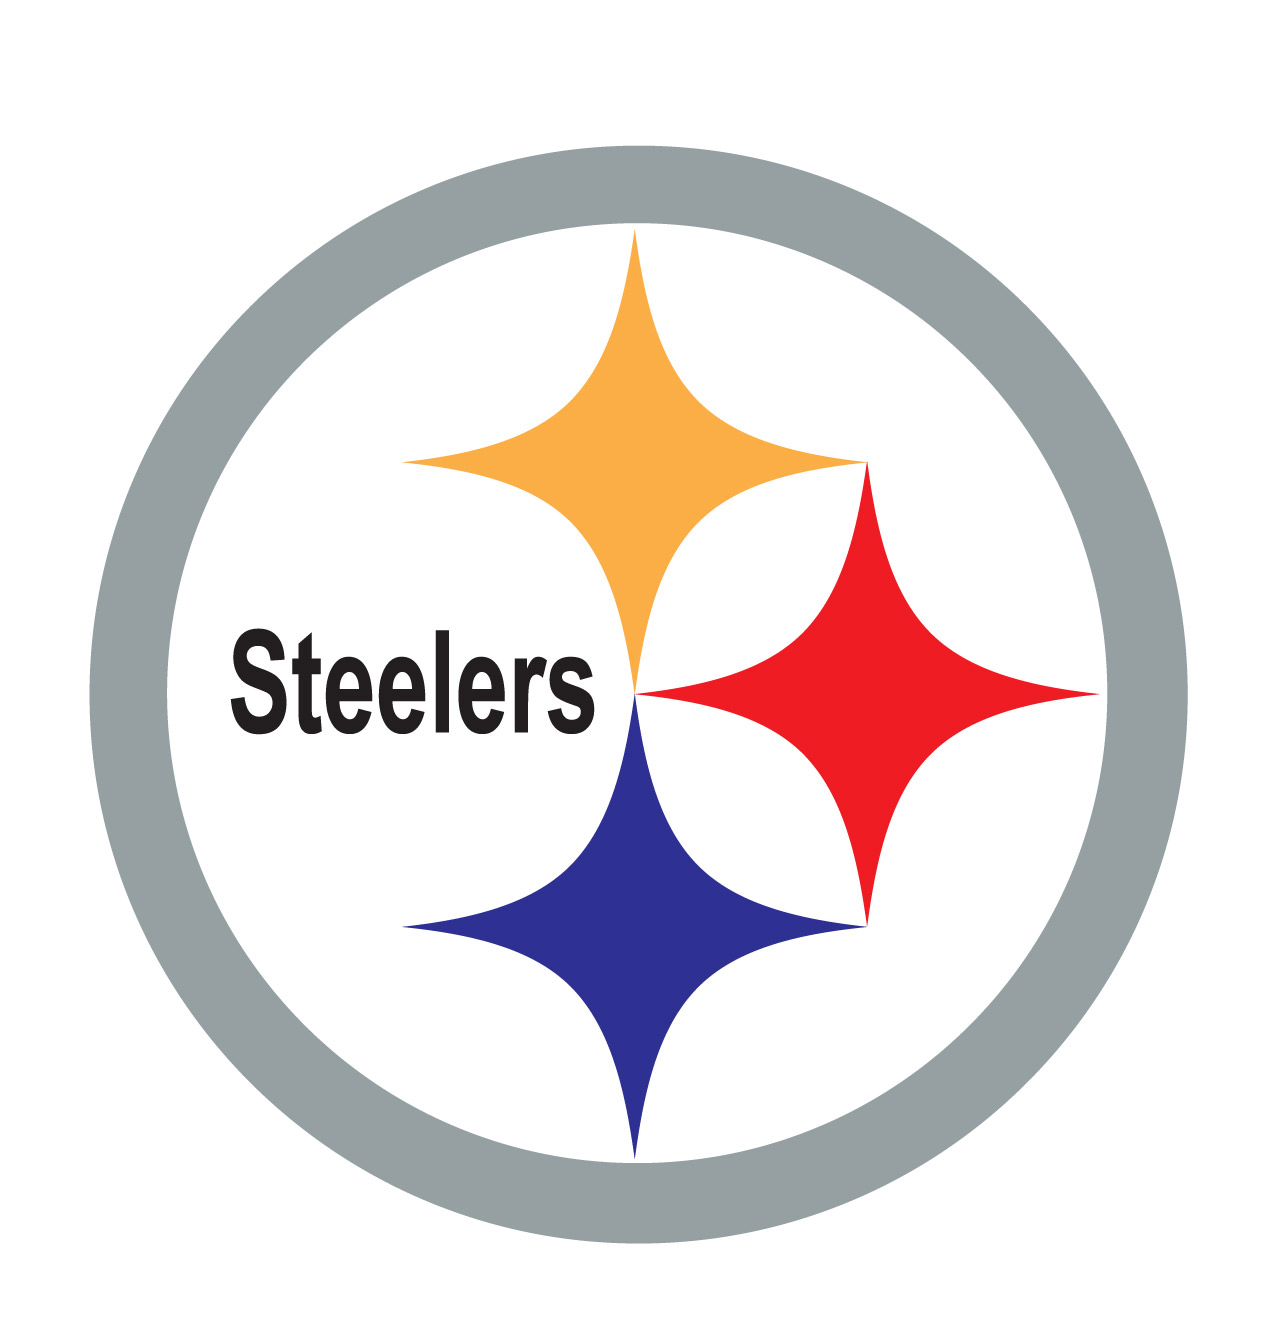 Steelers Logo Colors The Is Based On